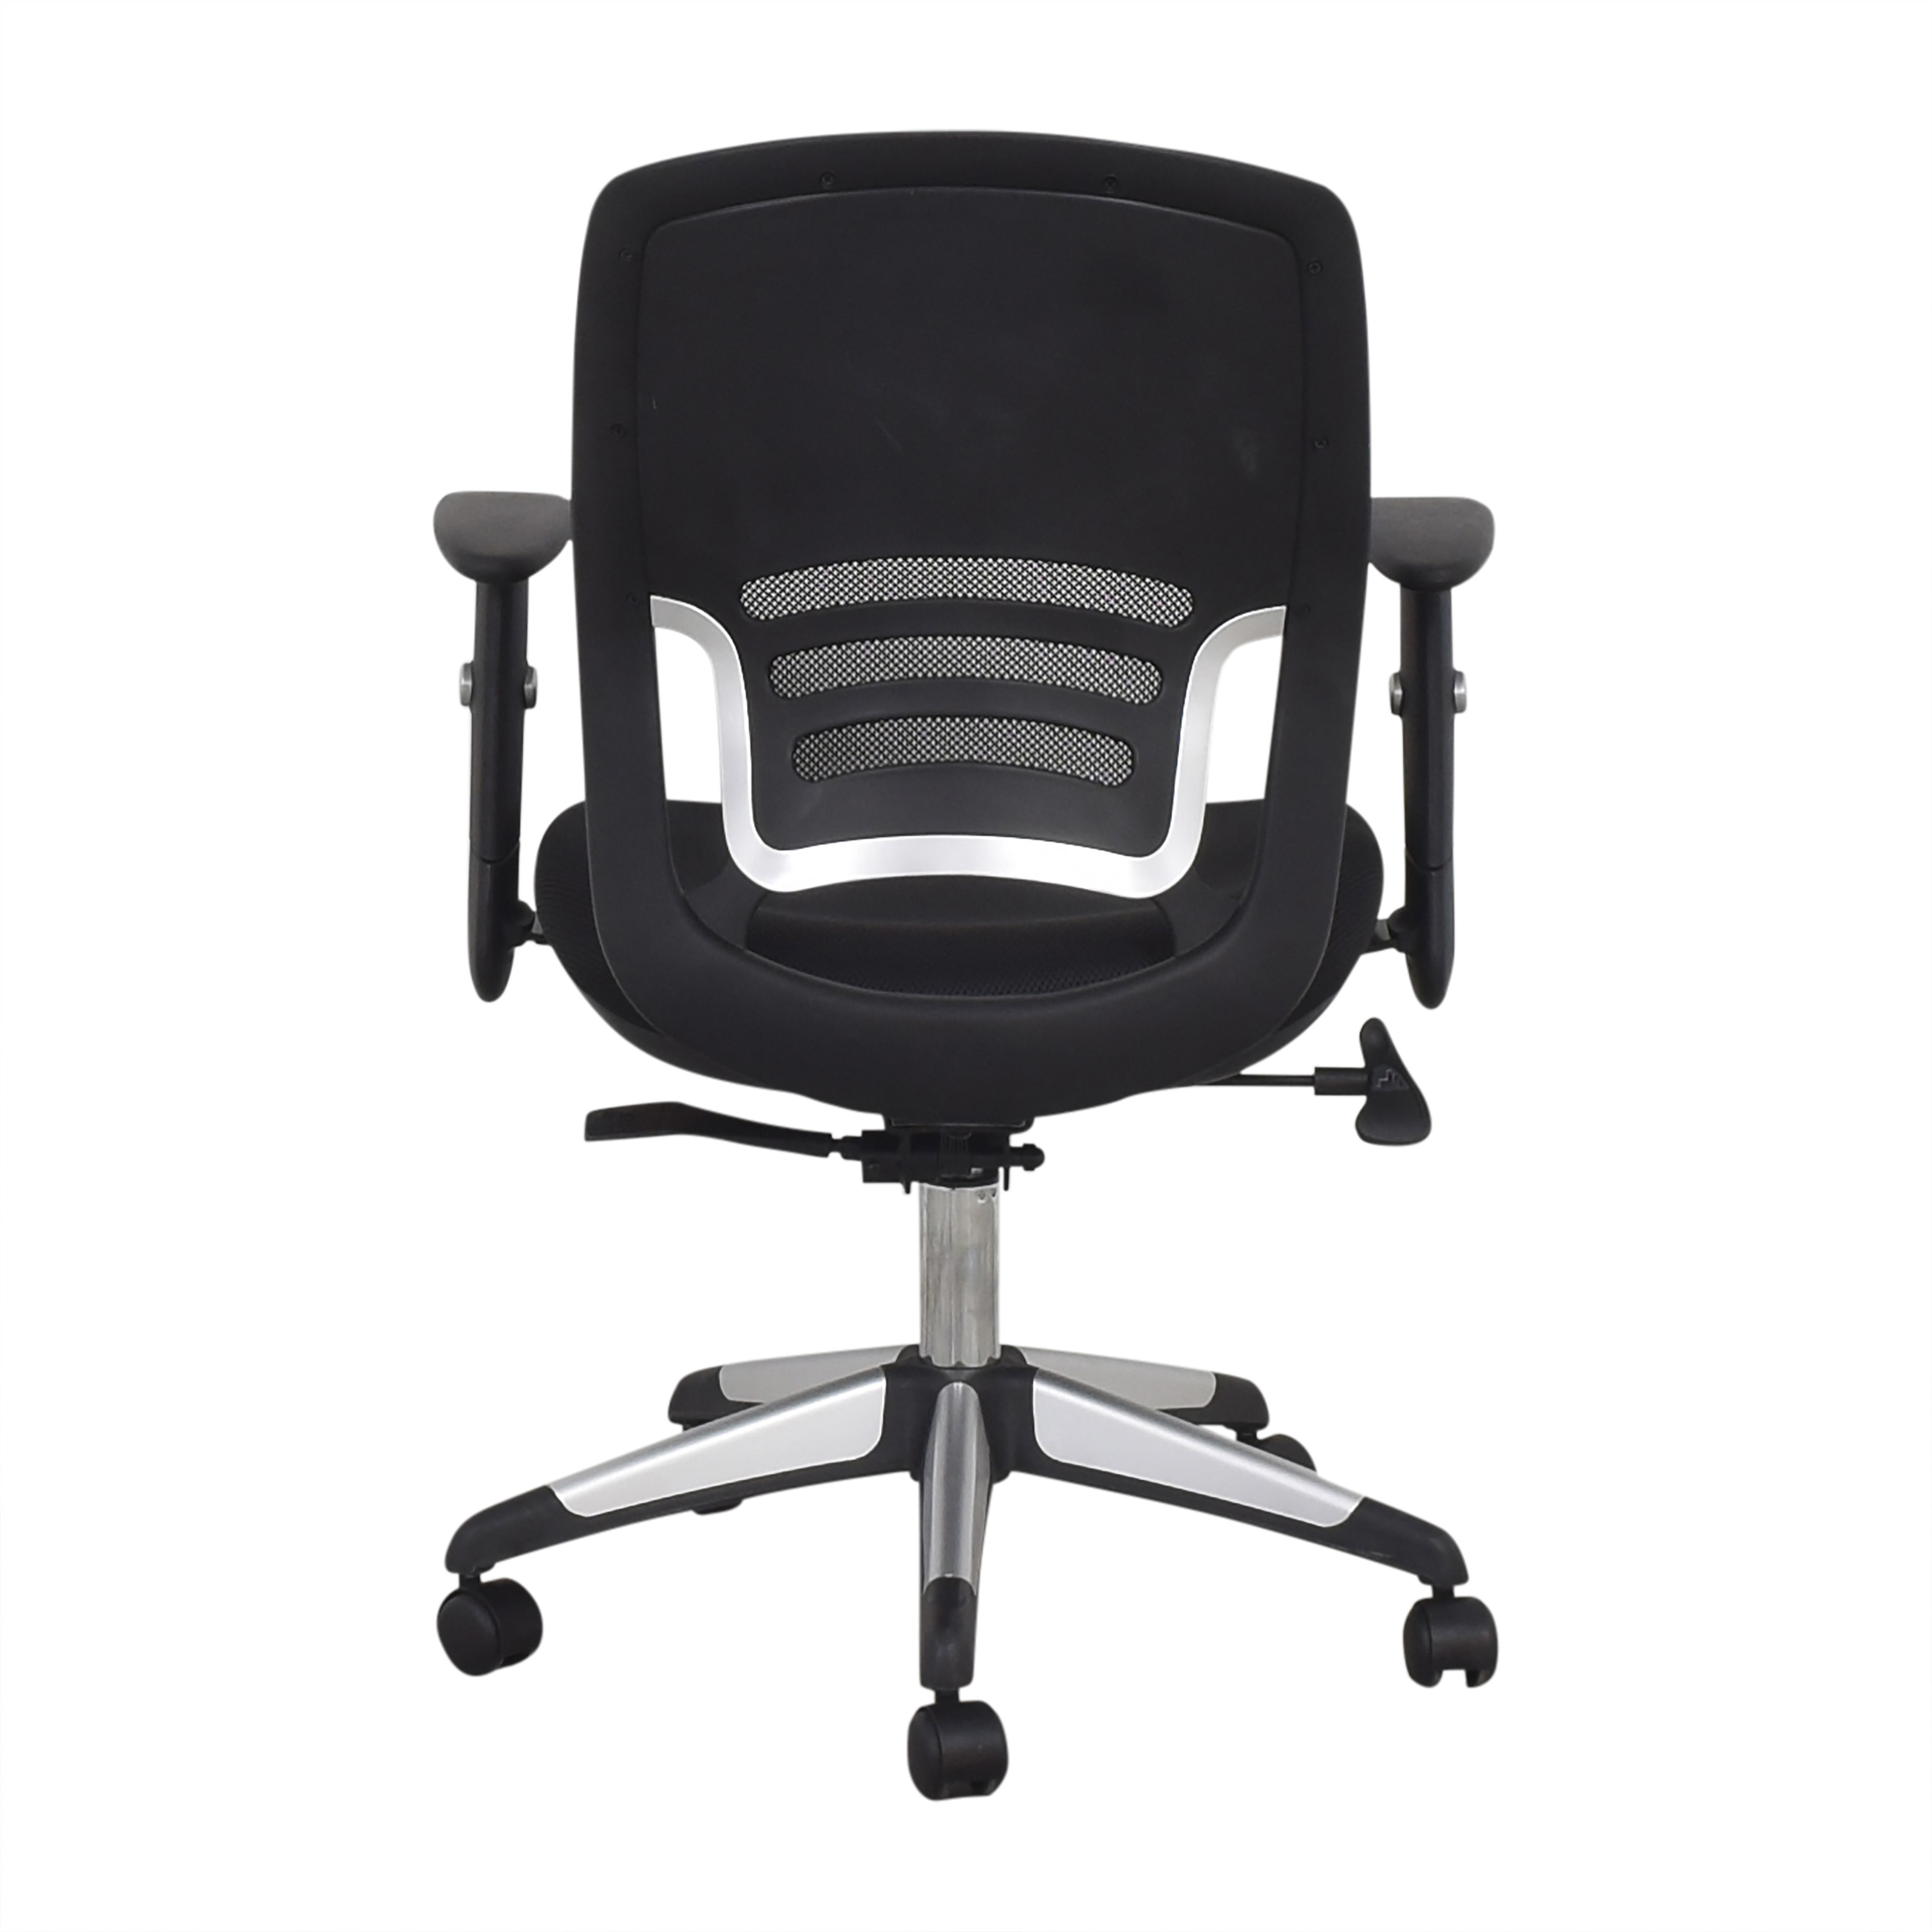 Offices to Go Mid Back Mesh Back Synchro-Tilter Office Chair  / Home Office Chairs